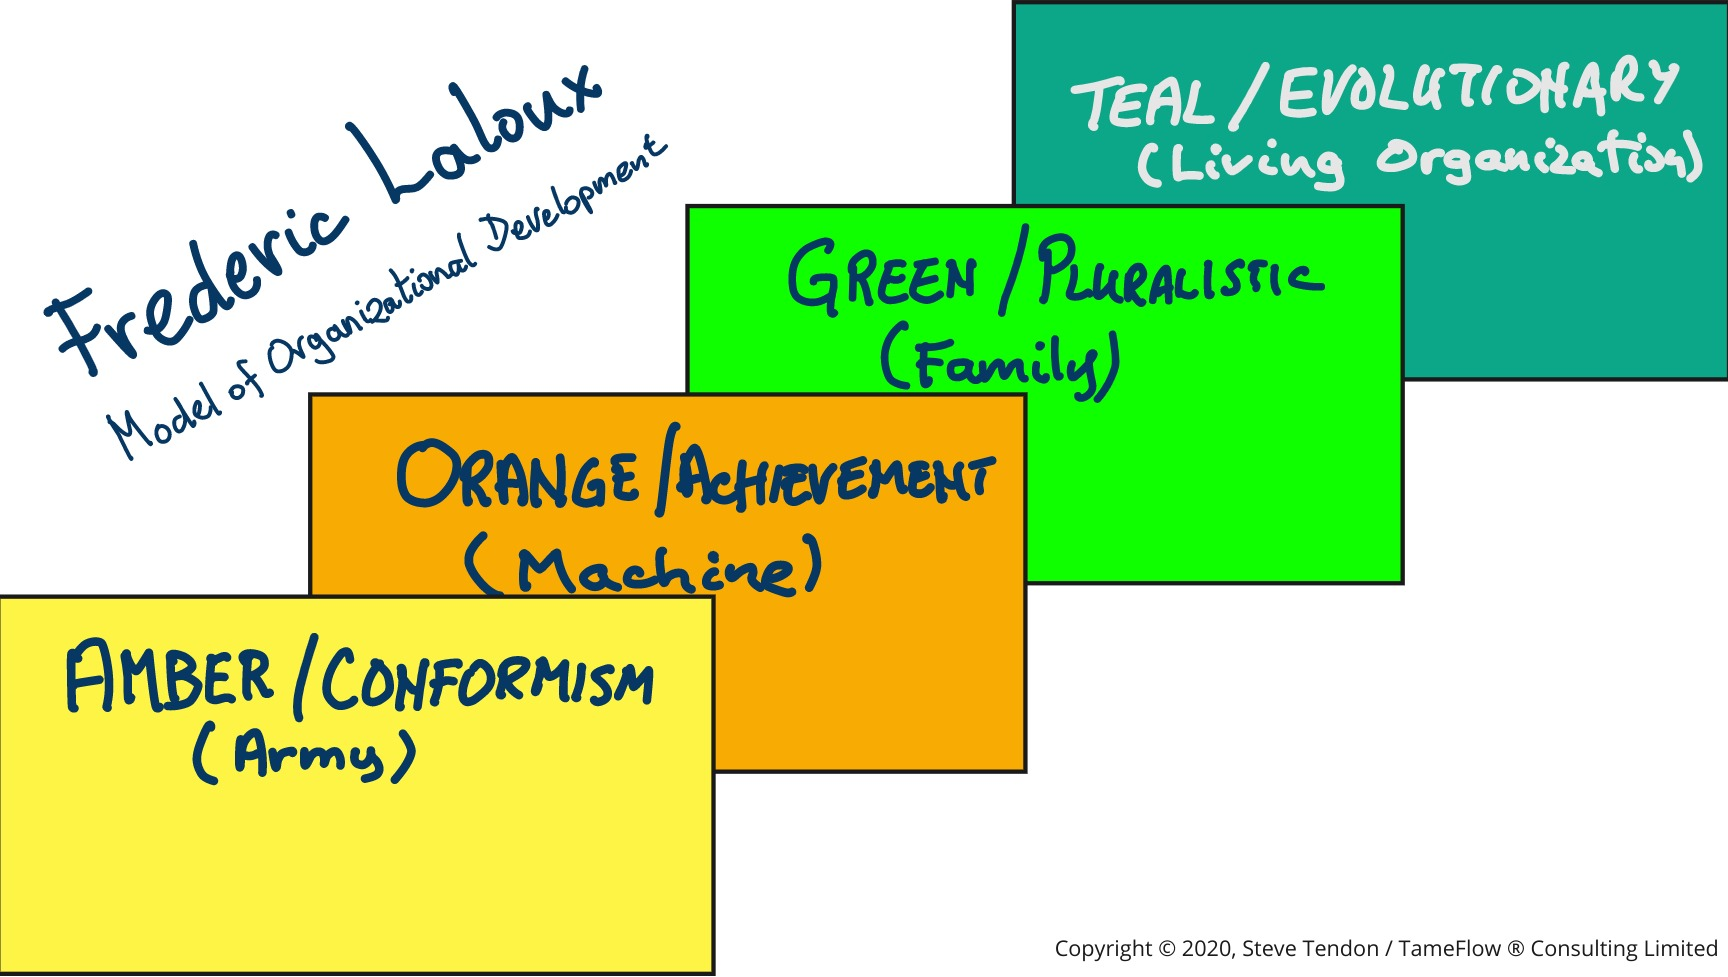 Frederic Laloux's Model